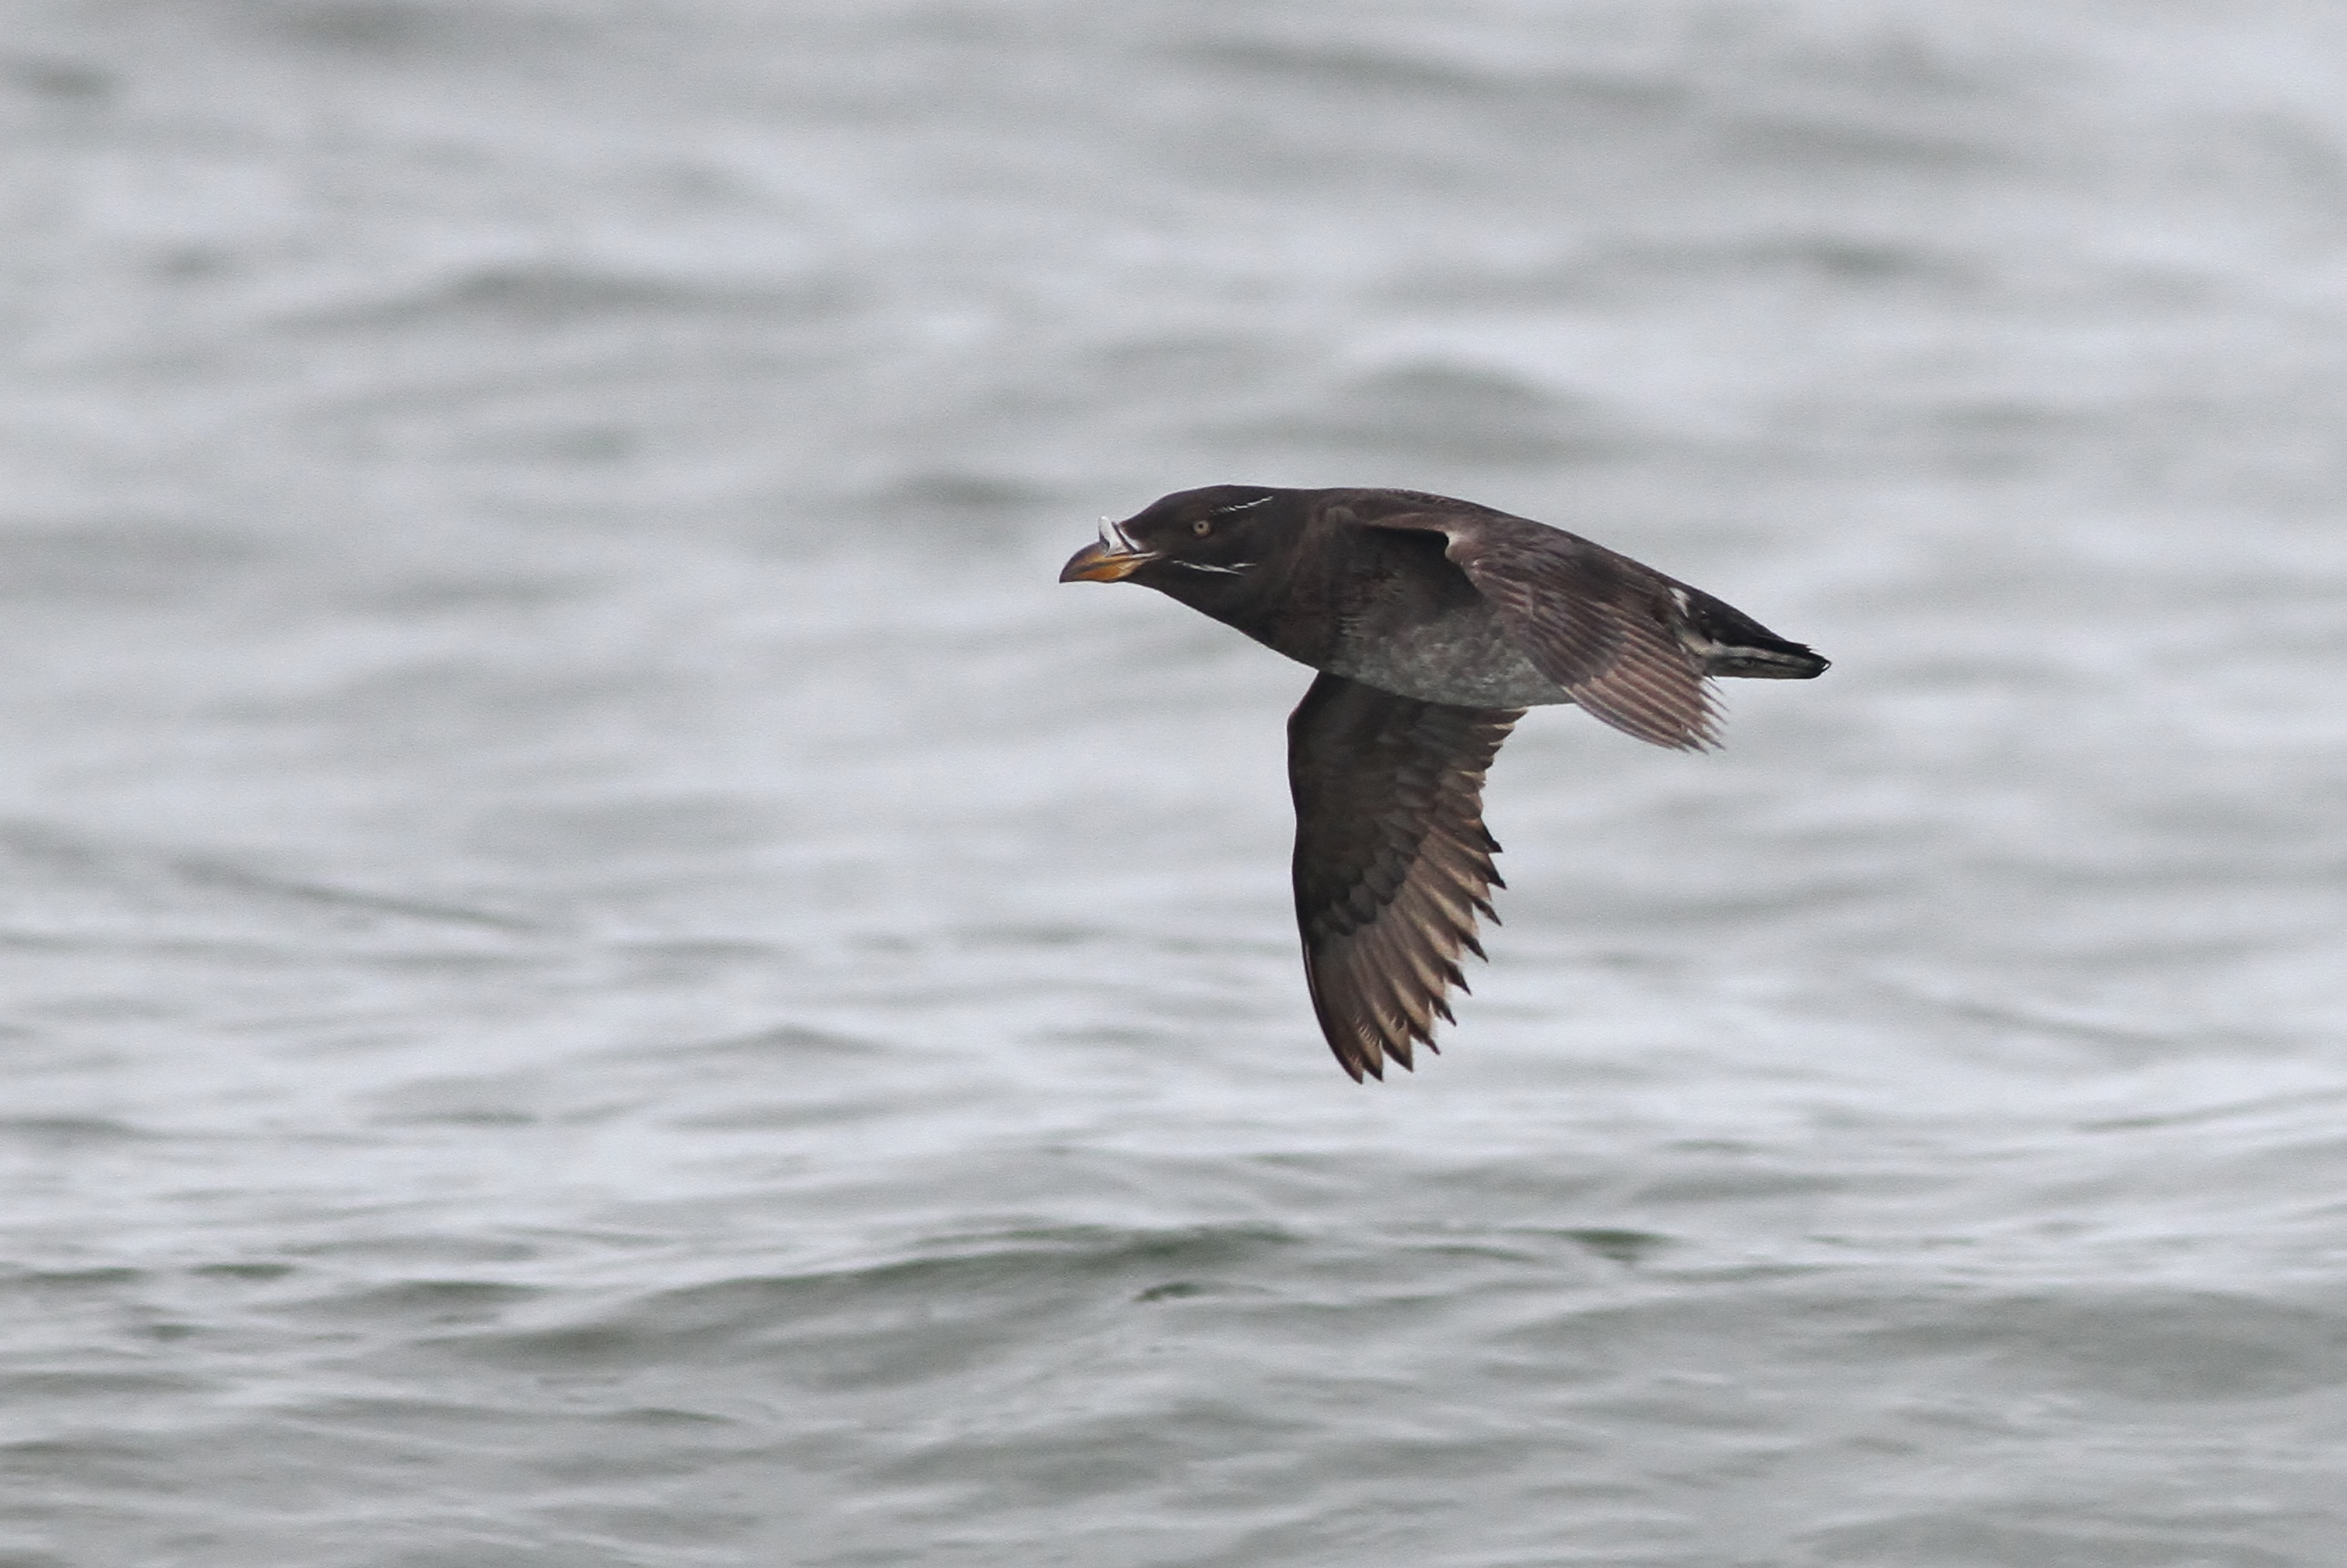 Rhinoceros Auklet flying past offshore Westport, Washington (Photo by Alex Lamoreaux0